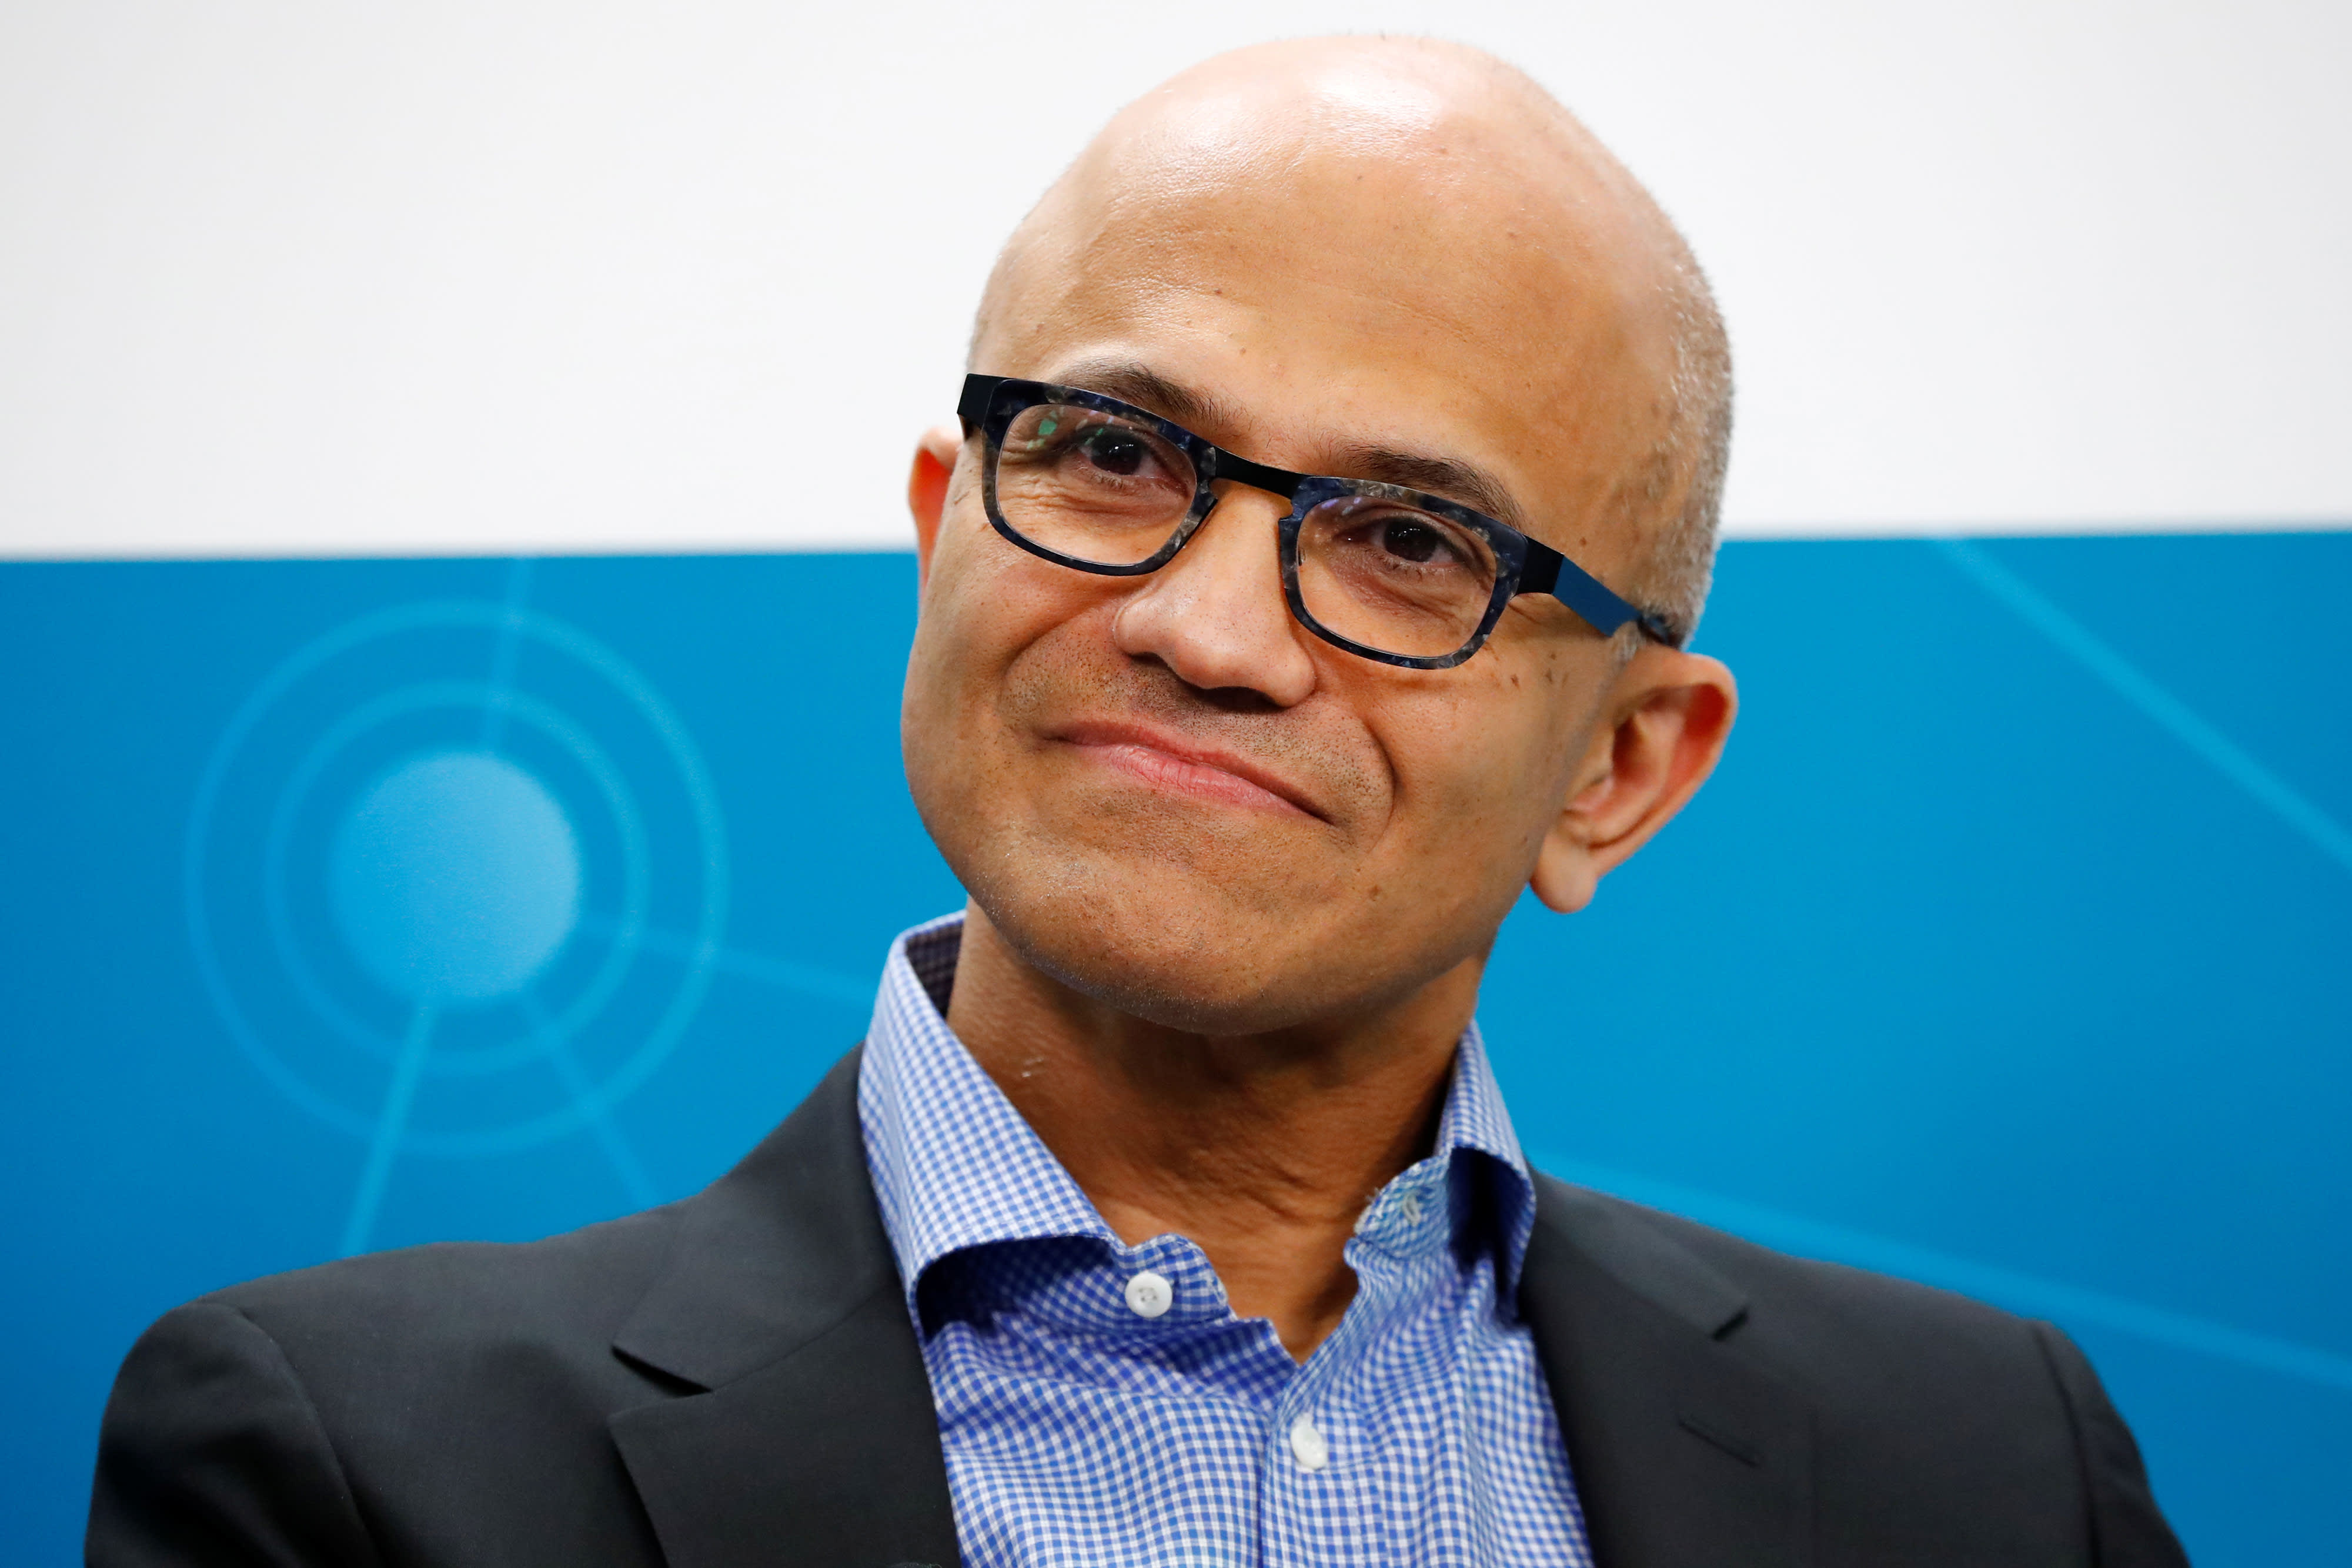 Microsoft just hit records, but one level could stop the rally in its tracks